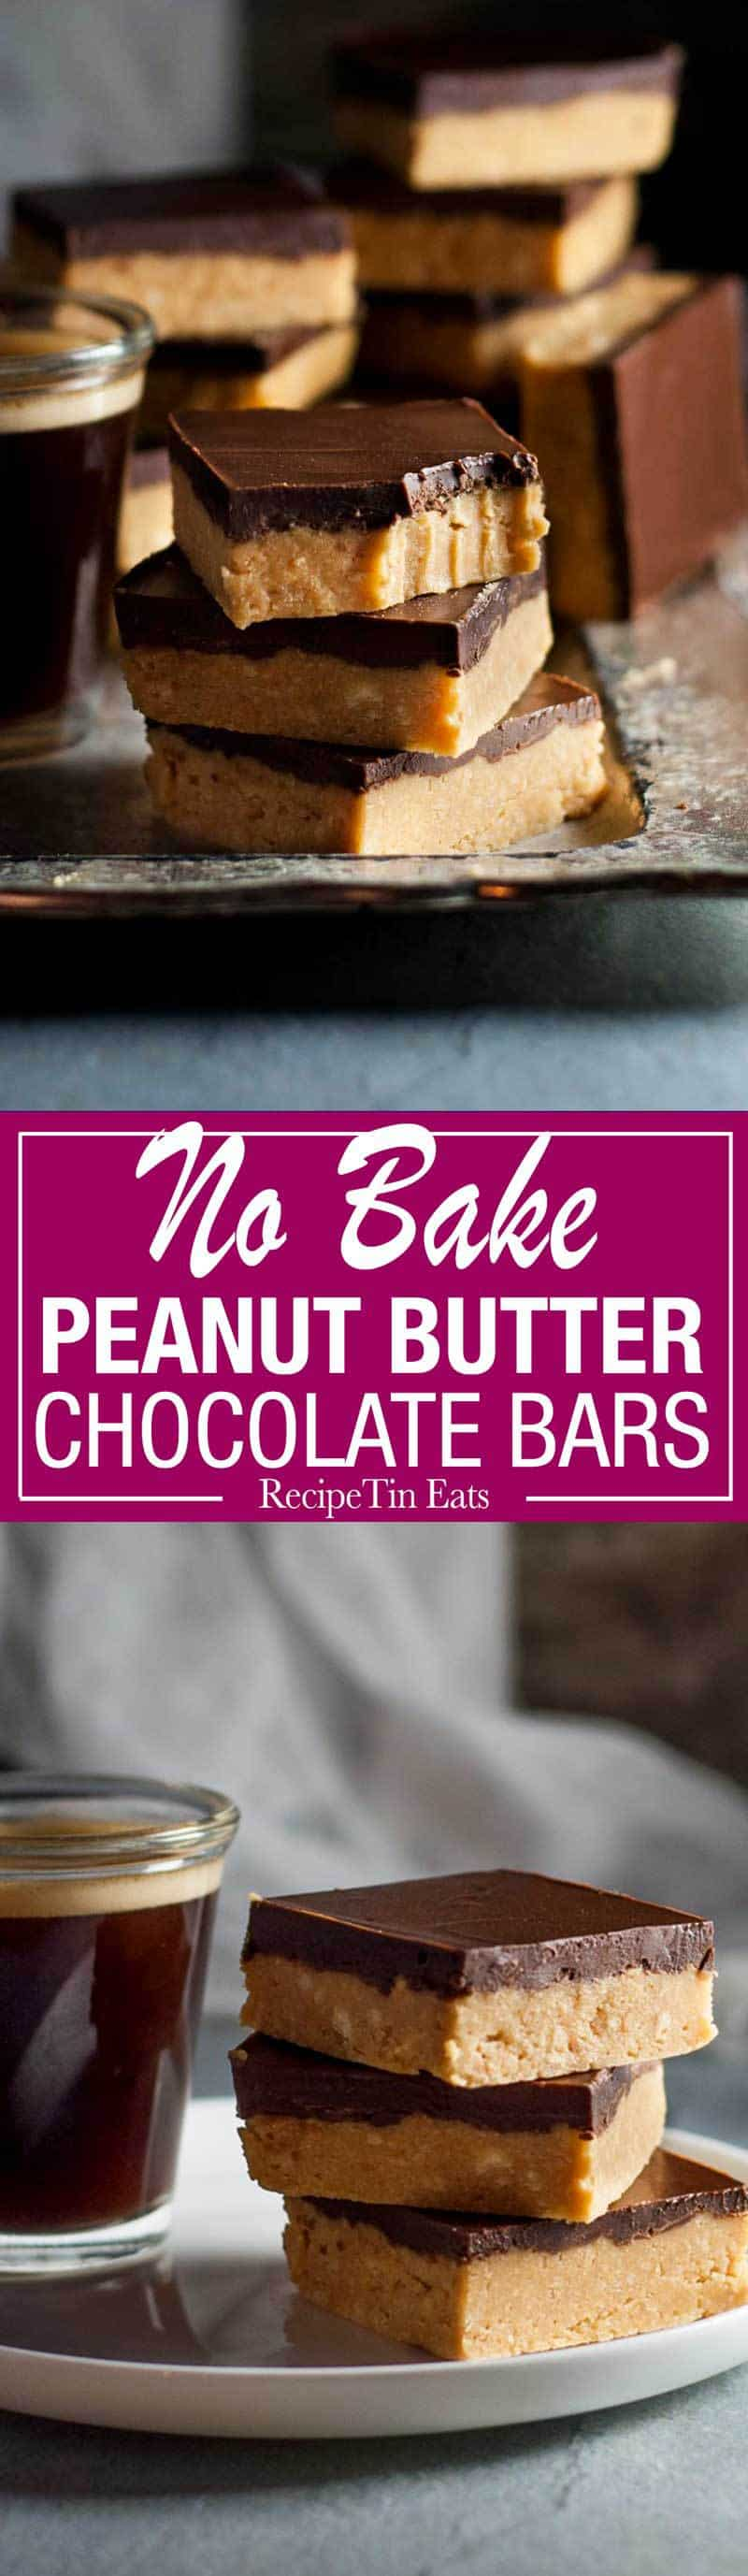 Chocolate, peanut butter, Graham Crackers, butter and sugar is all you need. They taste like Reece's Peanut Butter cups!